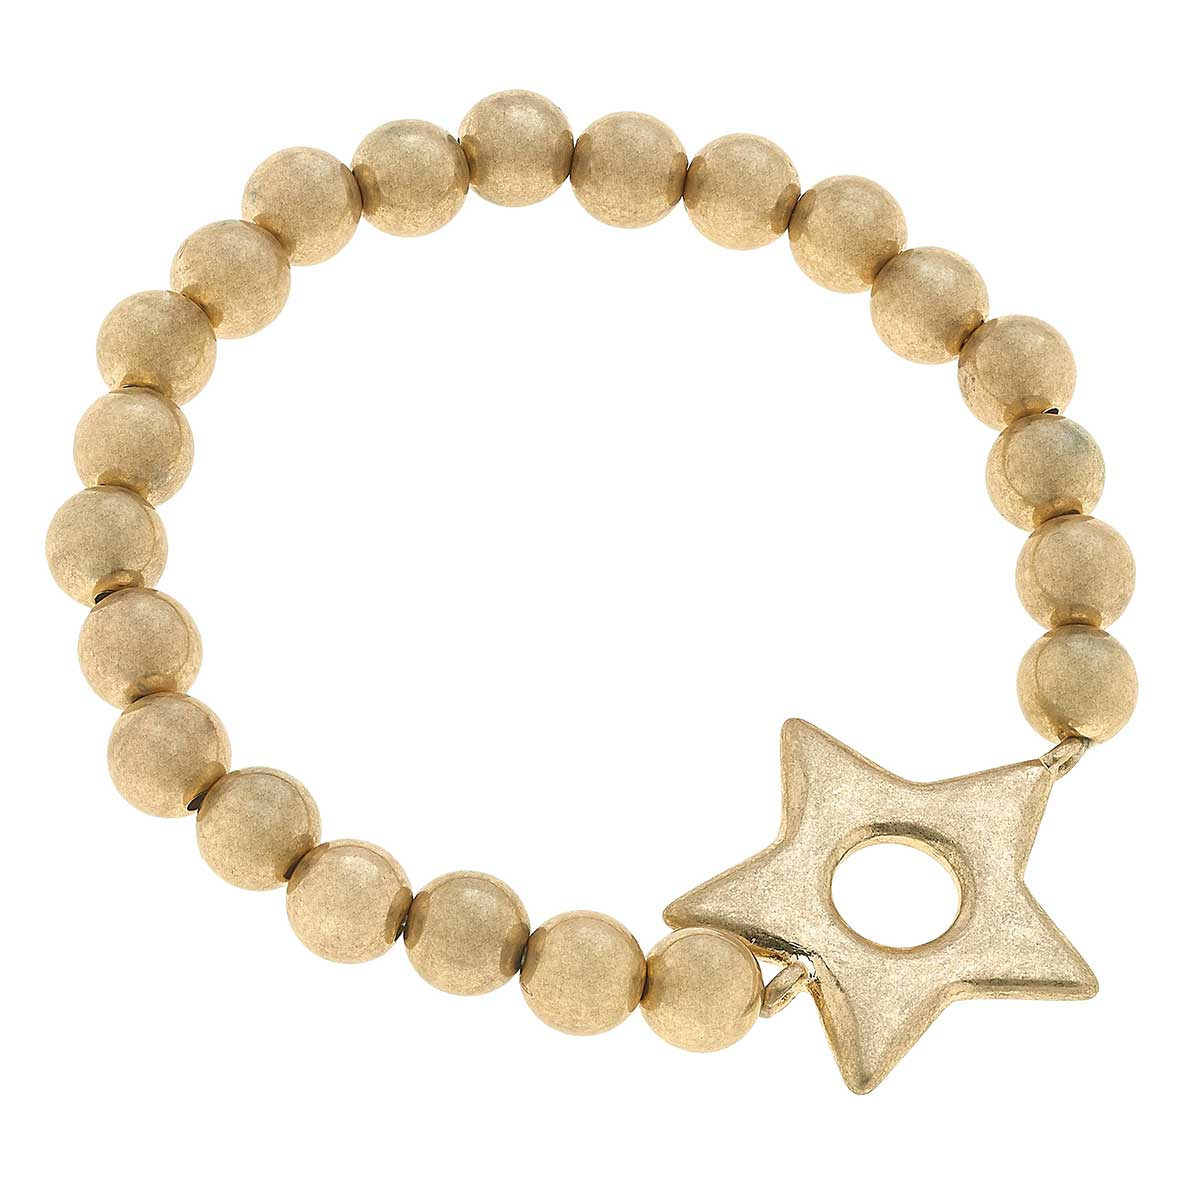 Avalyn Star Ball Bead Stretch Bracelet in Worn Gold